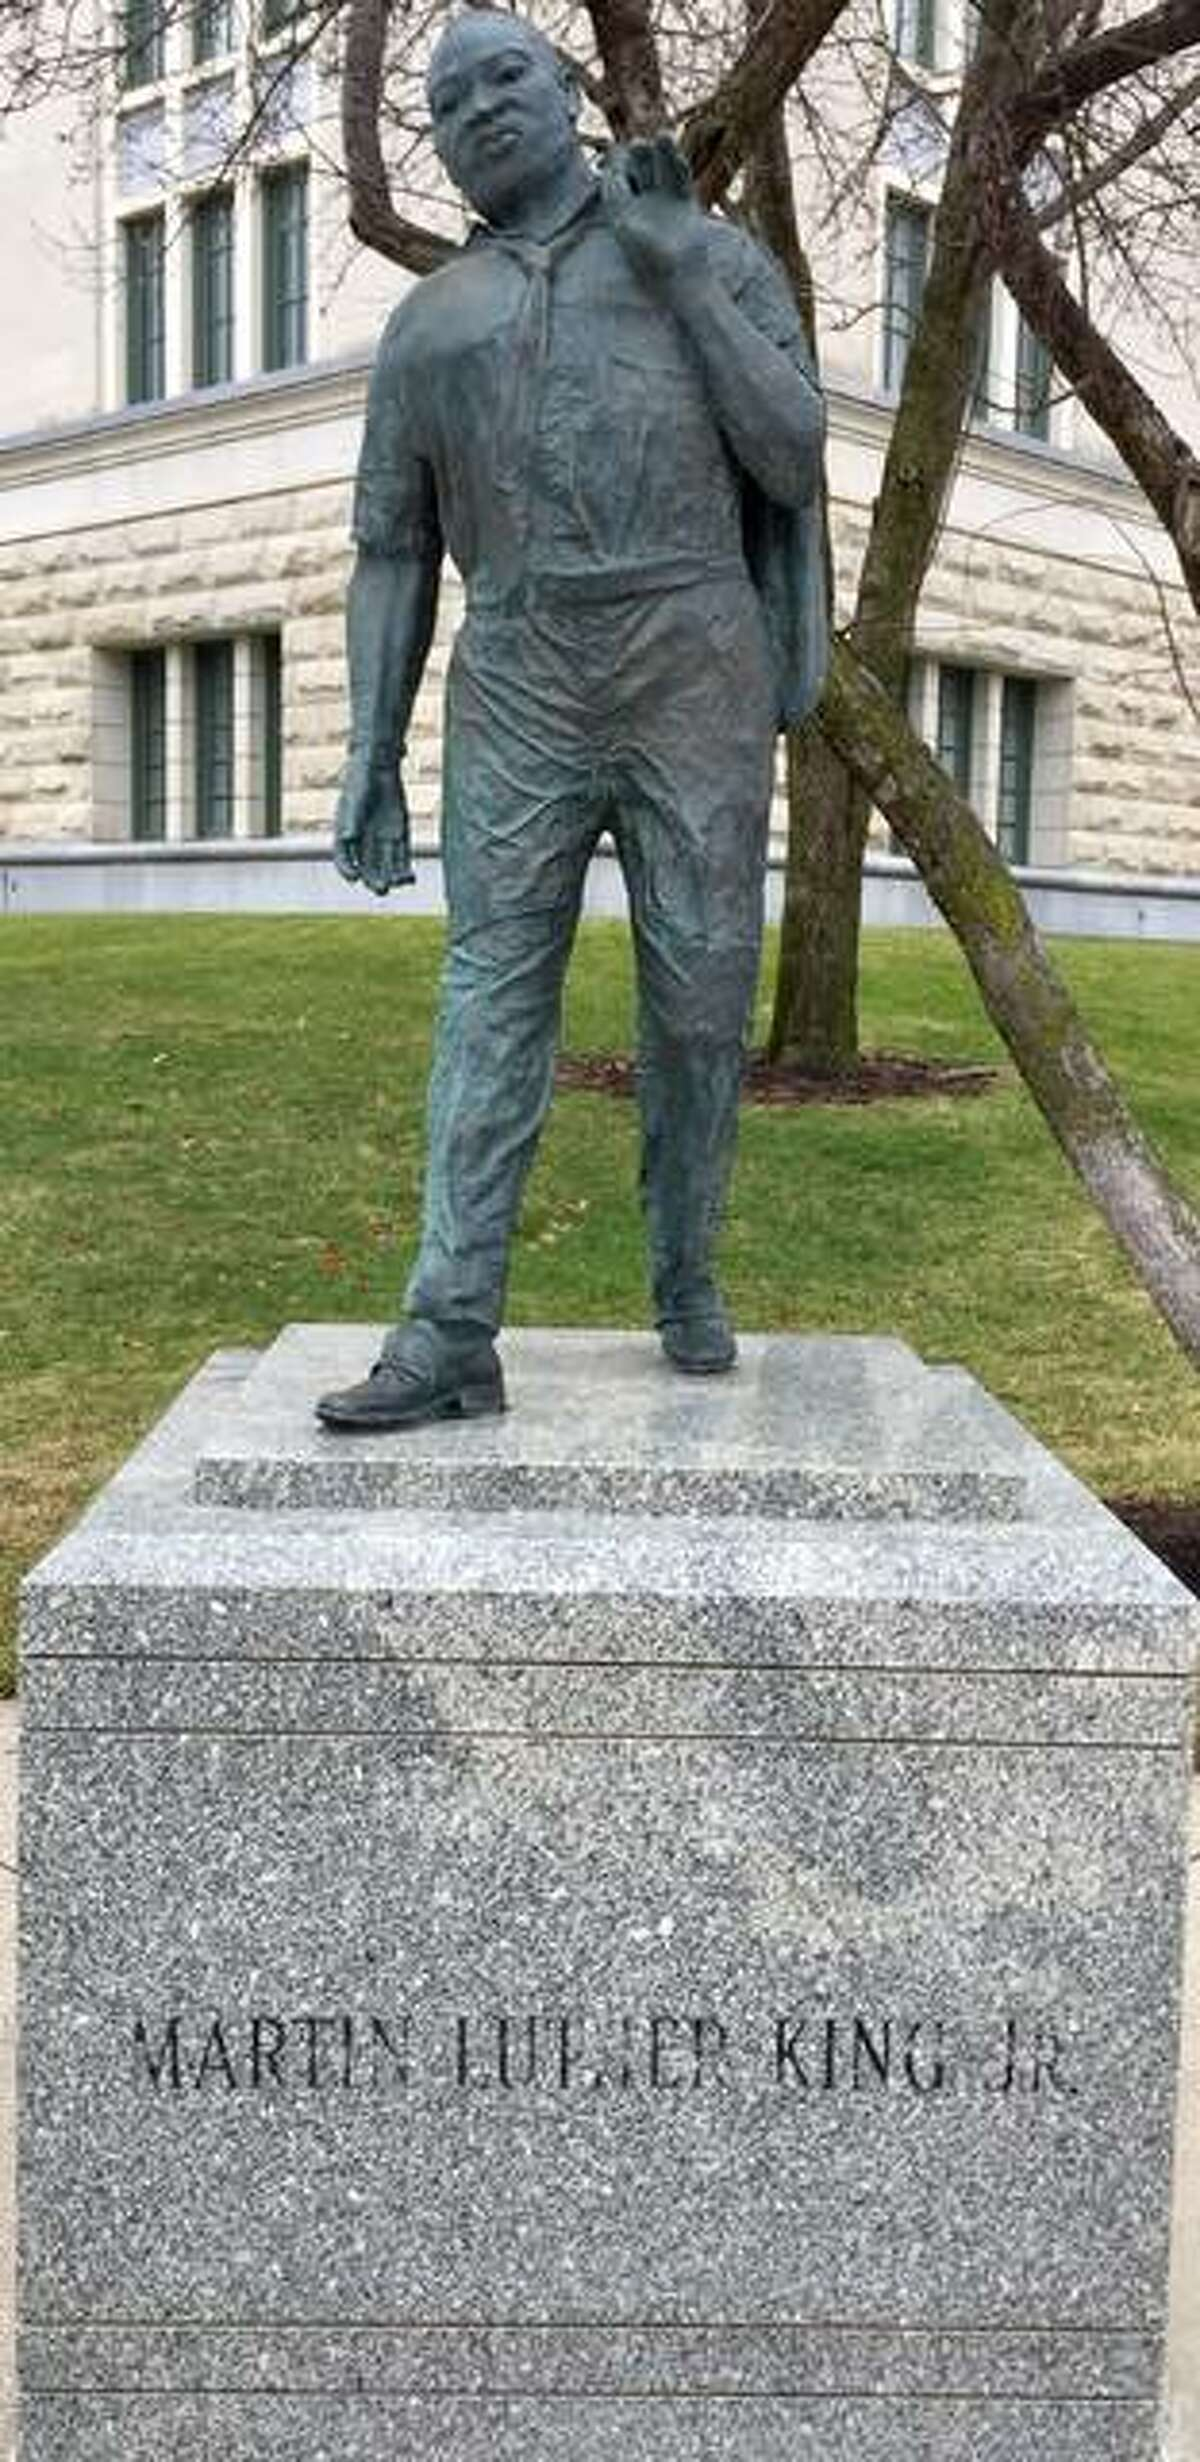 Illinois Secretary of State Jesse White wants a new statue in Springfield commemorating Martin Luther King Jr., and he's willing to pledge $5,000 to get it done. The current statue is at the corner of 2nd Street and Capitol Avenue across from the Capitol building.